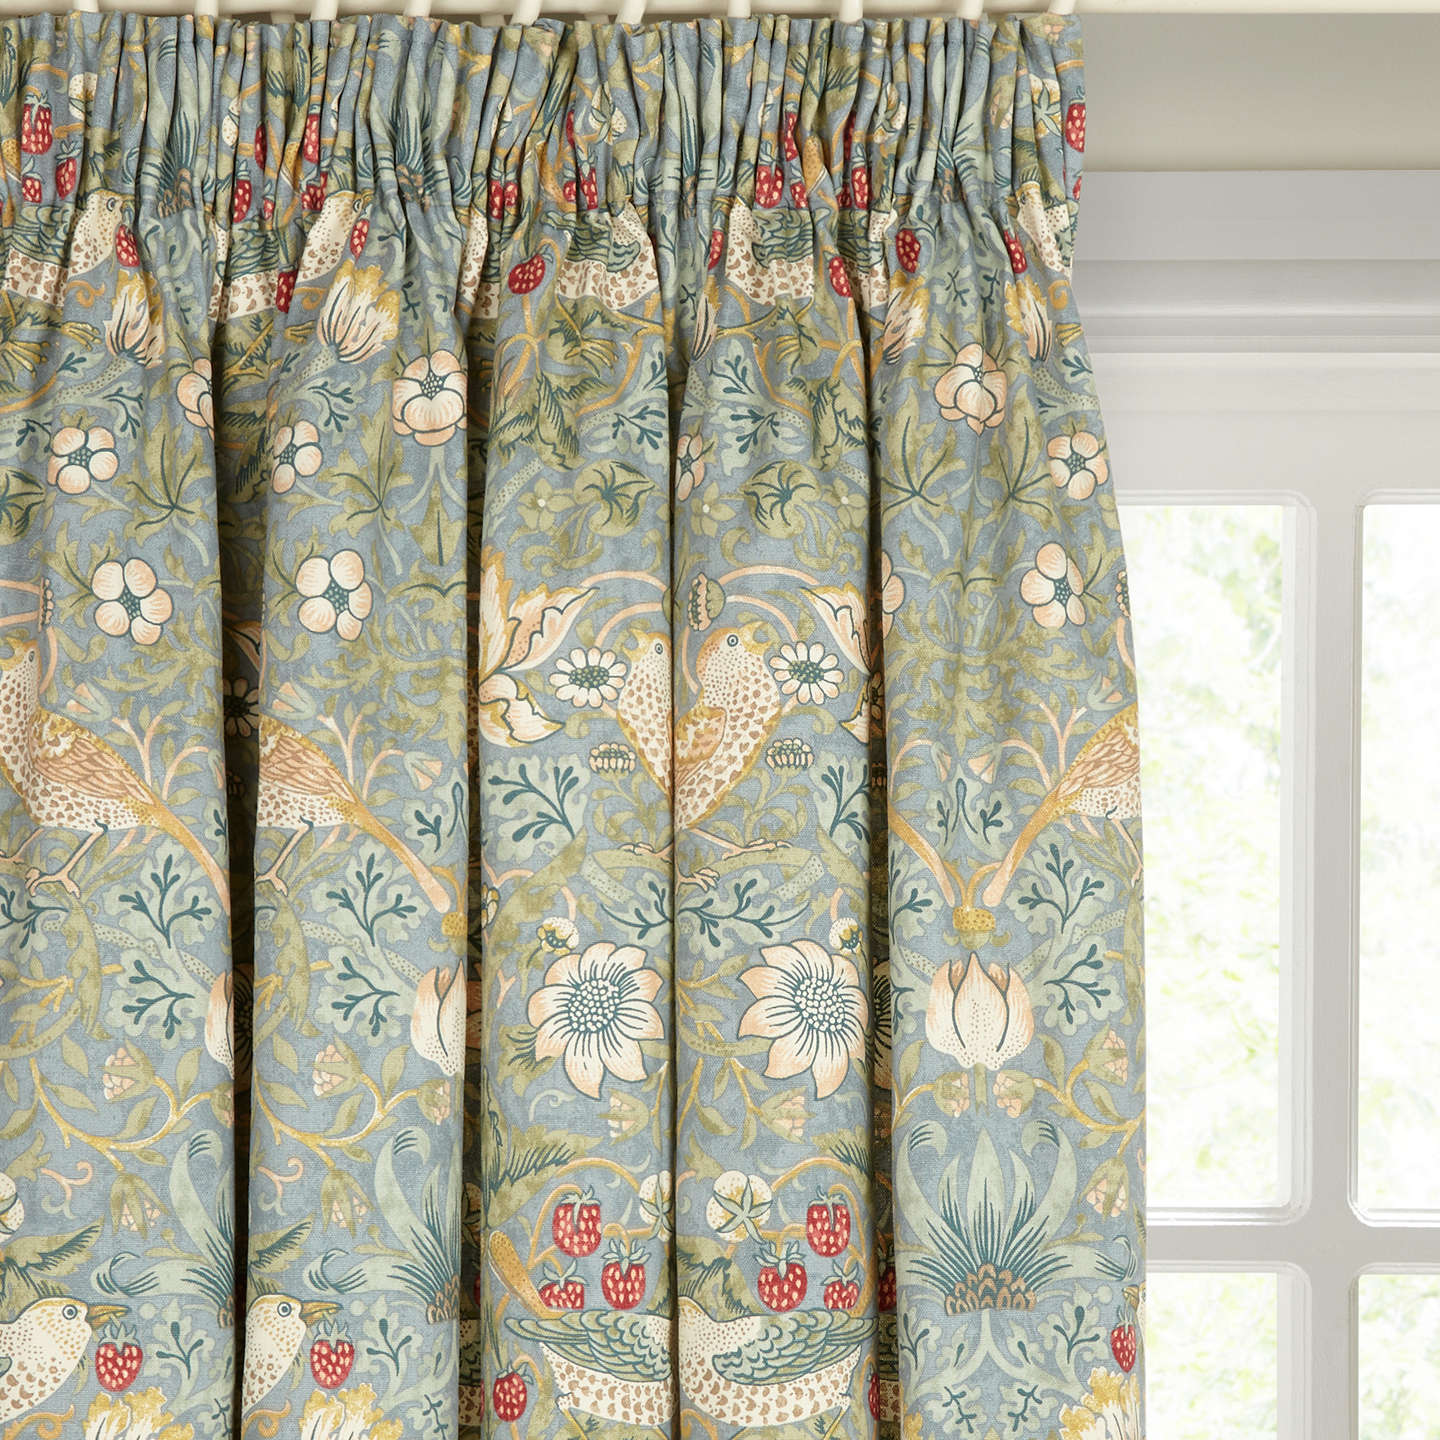 embroidered print patterned red gold pattern printed hei b quills anthropologie scrolled curtains curtain